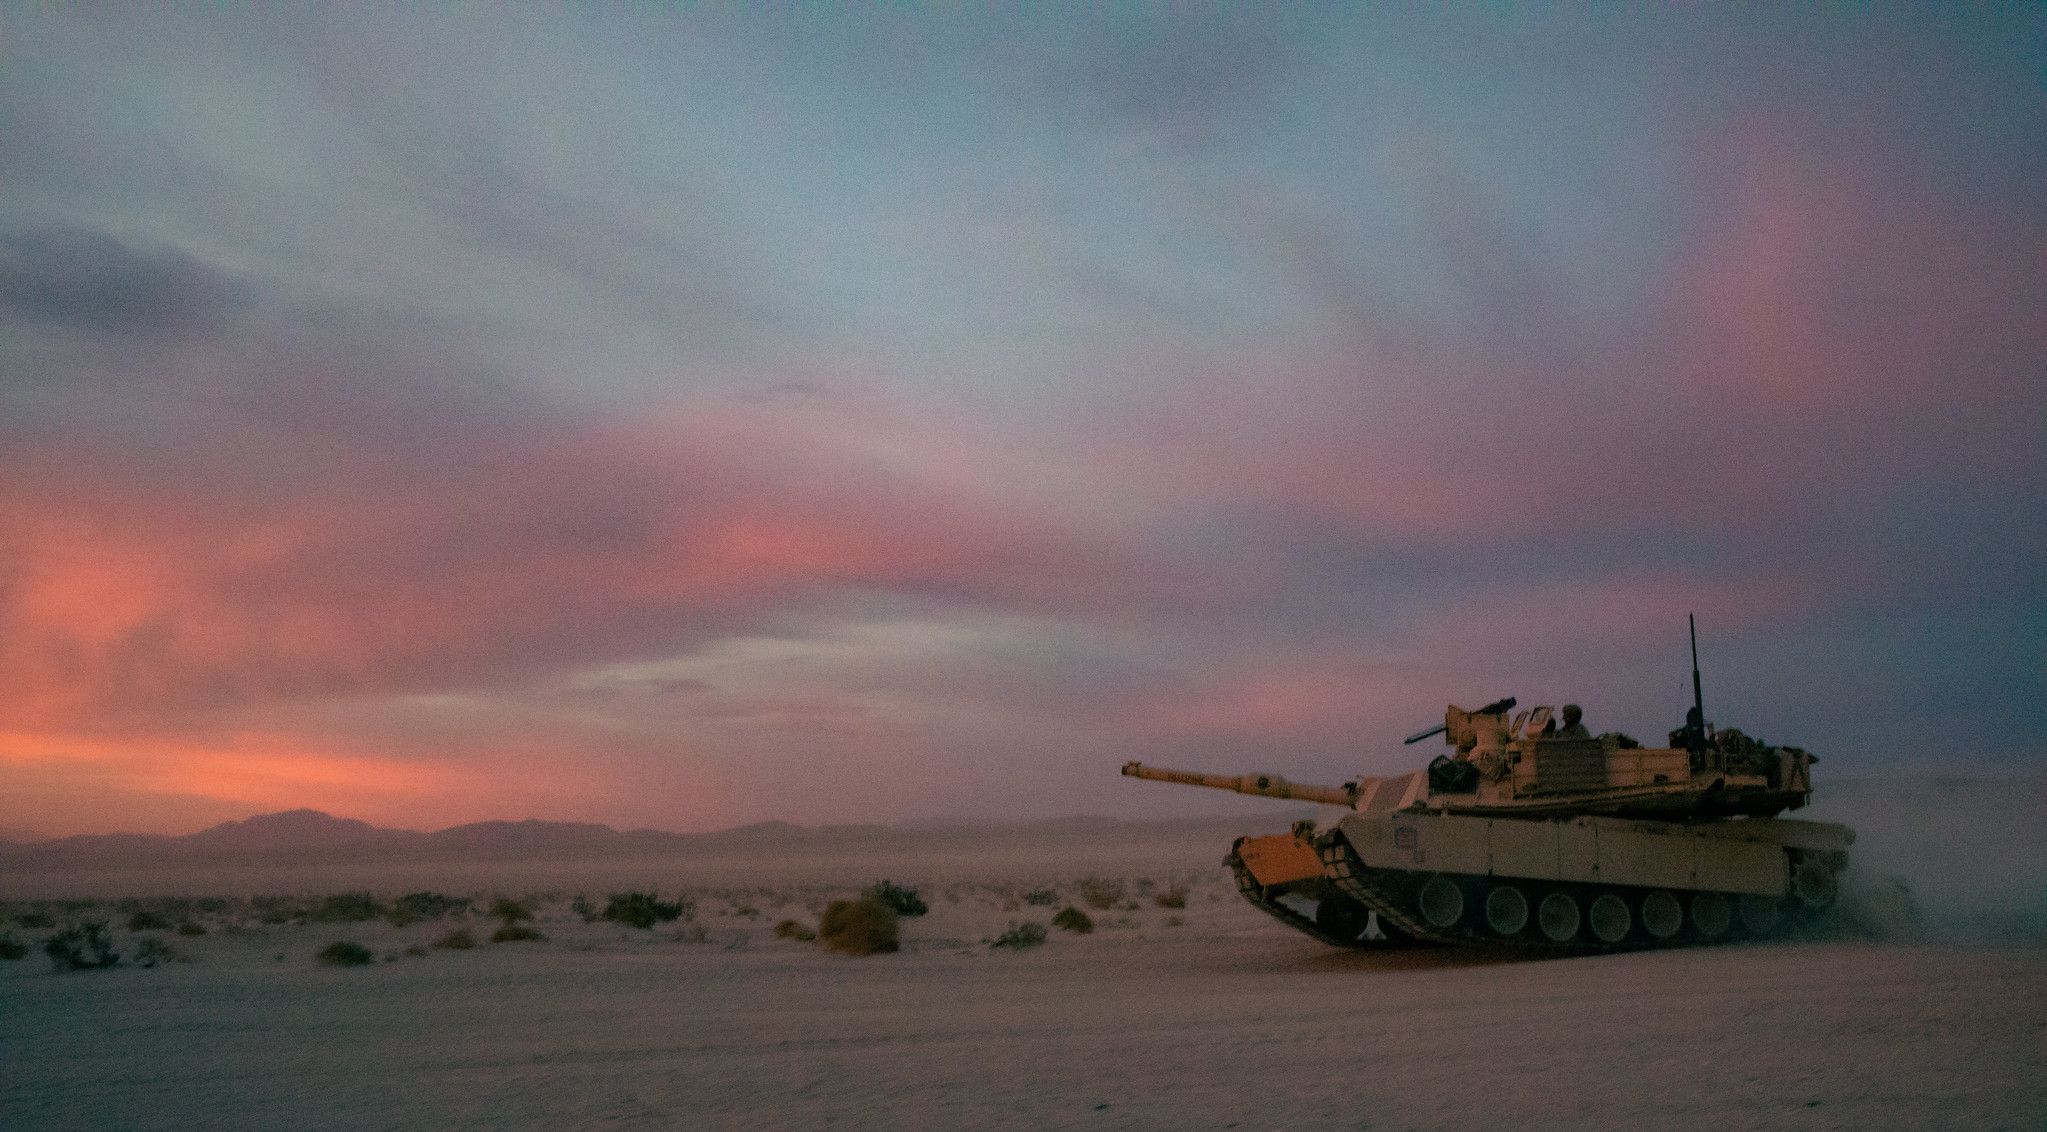 An M1A2 Abrams tank assigned to the 155th Armored Brigade Combat Team, Mississippi Army National Guard, conducts maneuvers during training at the National Training Center, Fort Irwin, Calif., June 7, 2021. (Spc. Micah Longmire/Mississippi National Guard)